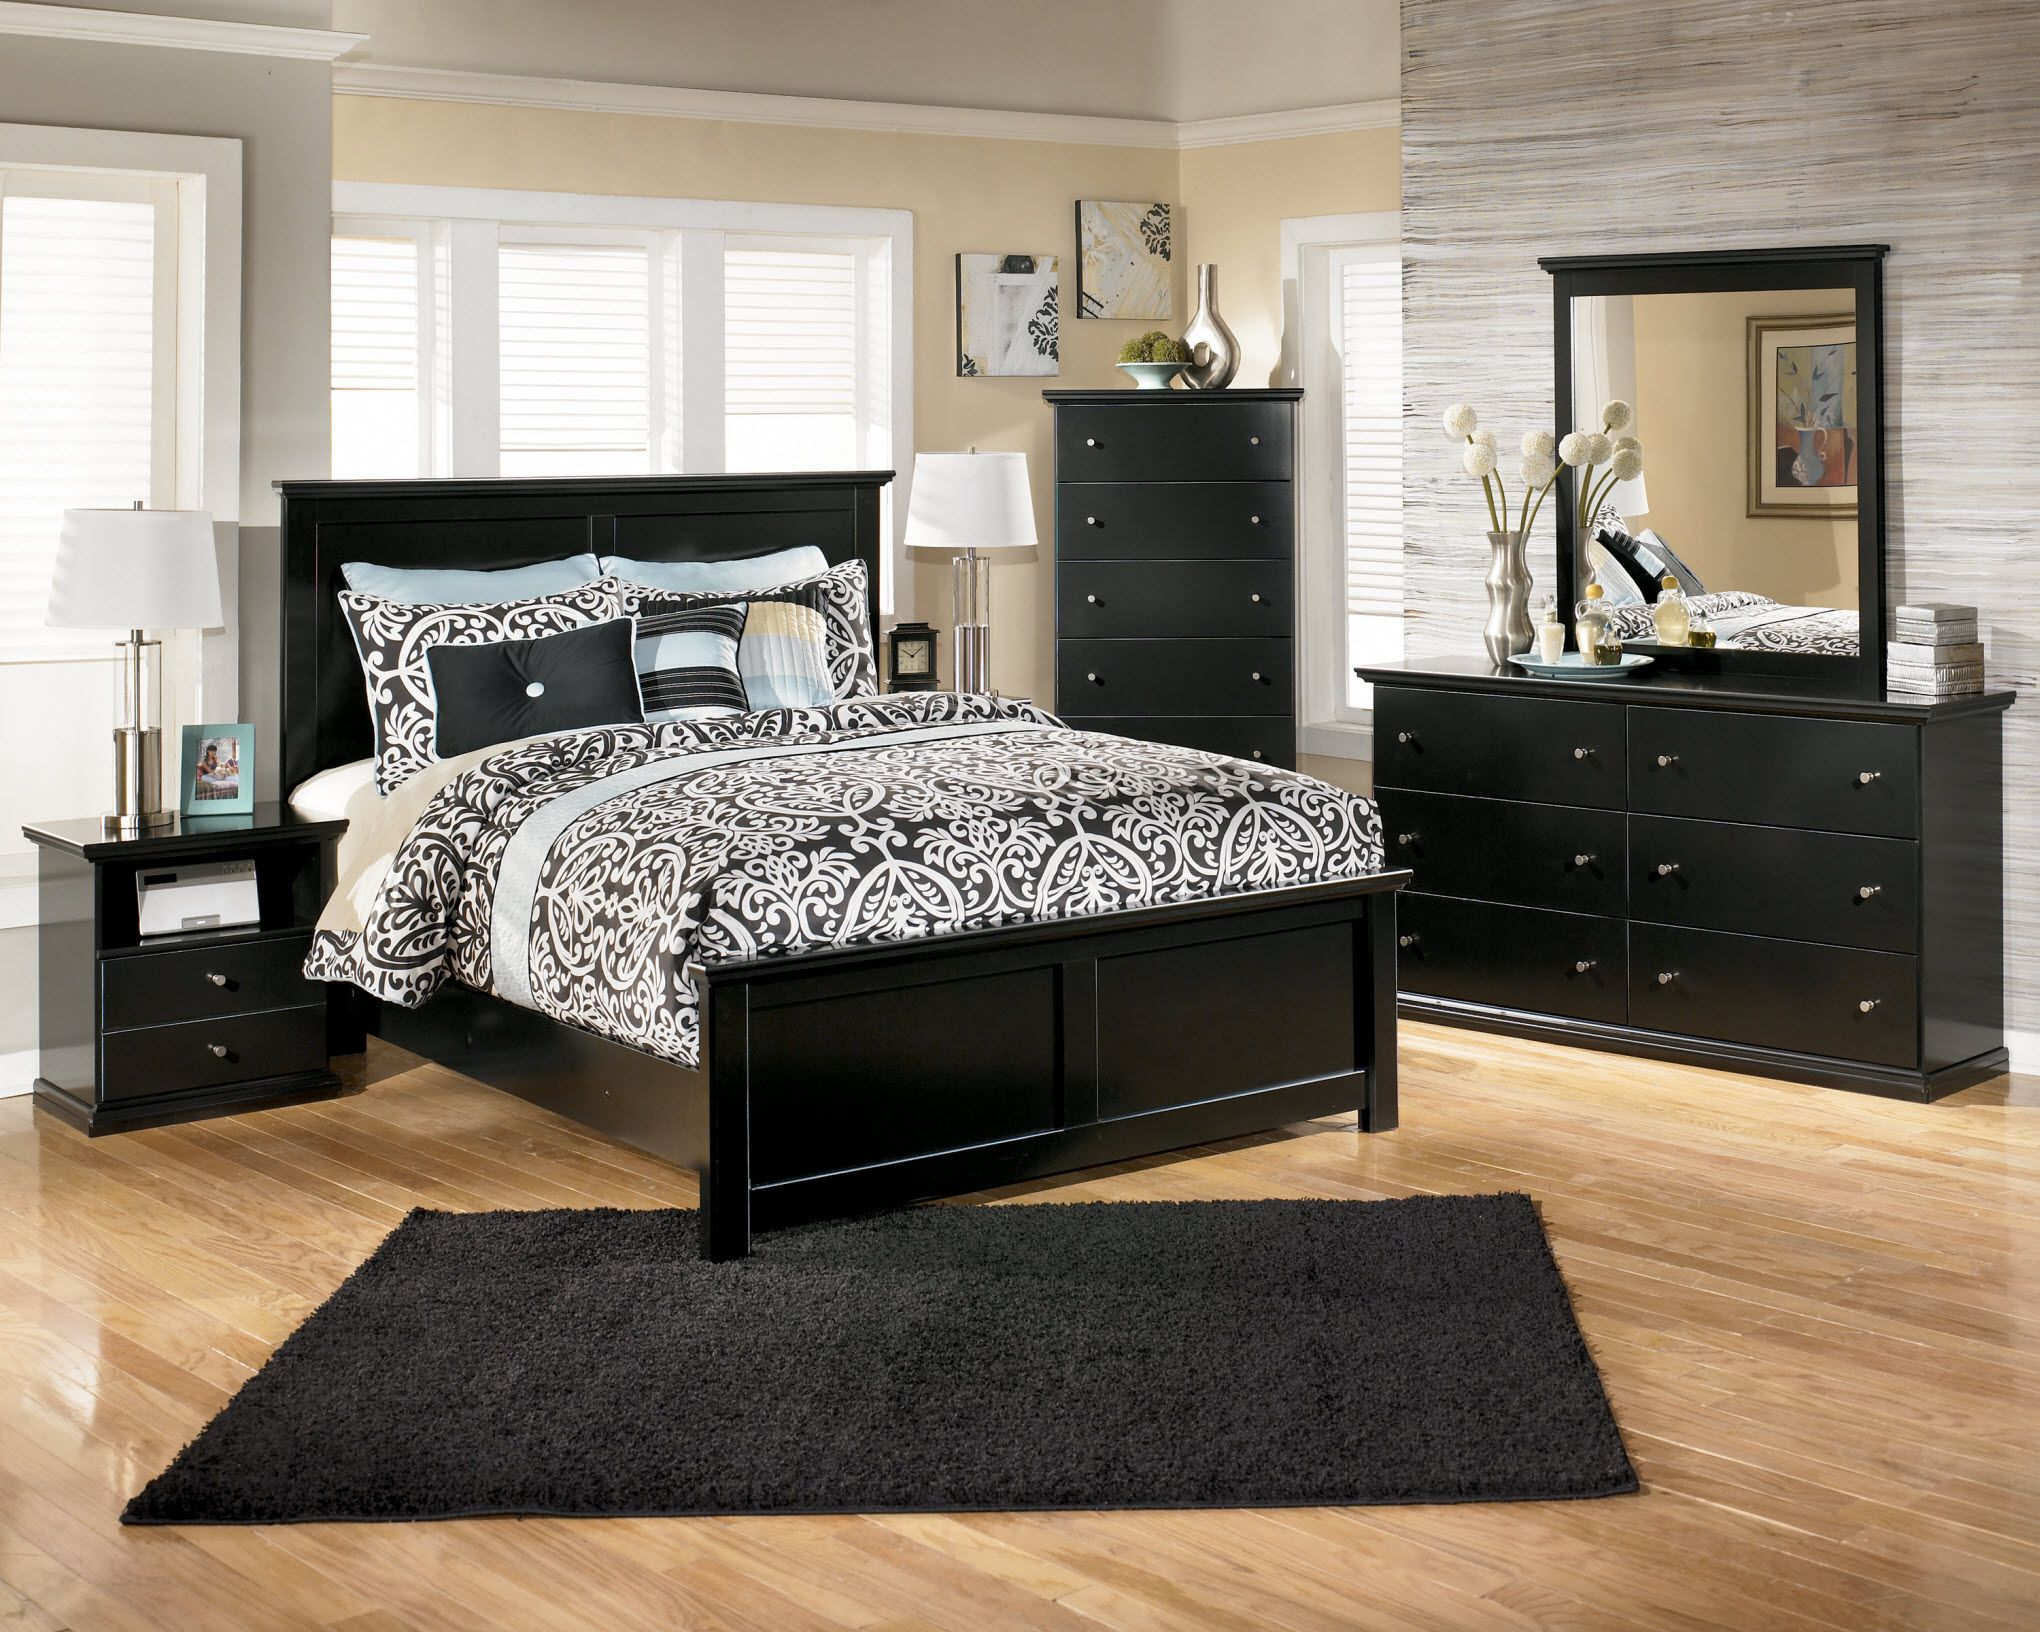 15 Cool Black Bedroom Furniture Sets For Bold Feeling Bedrooms